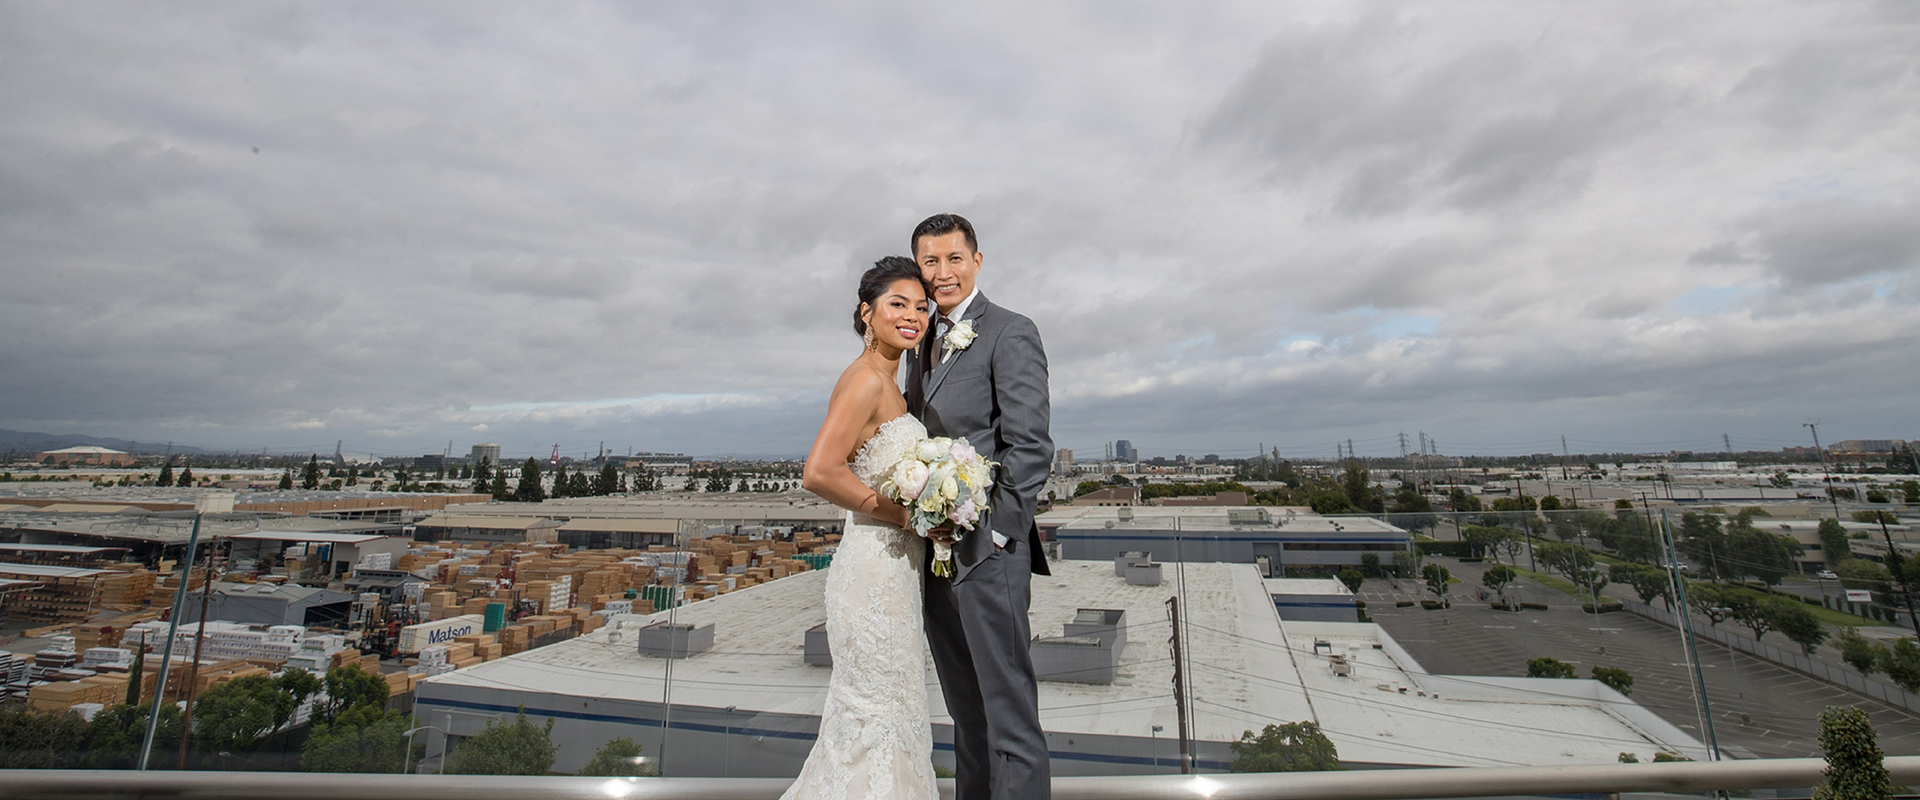 Bride and groom pictured on the balcony